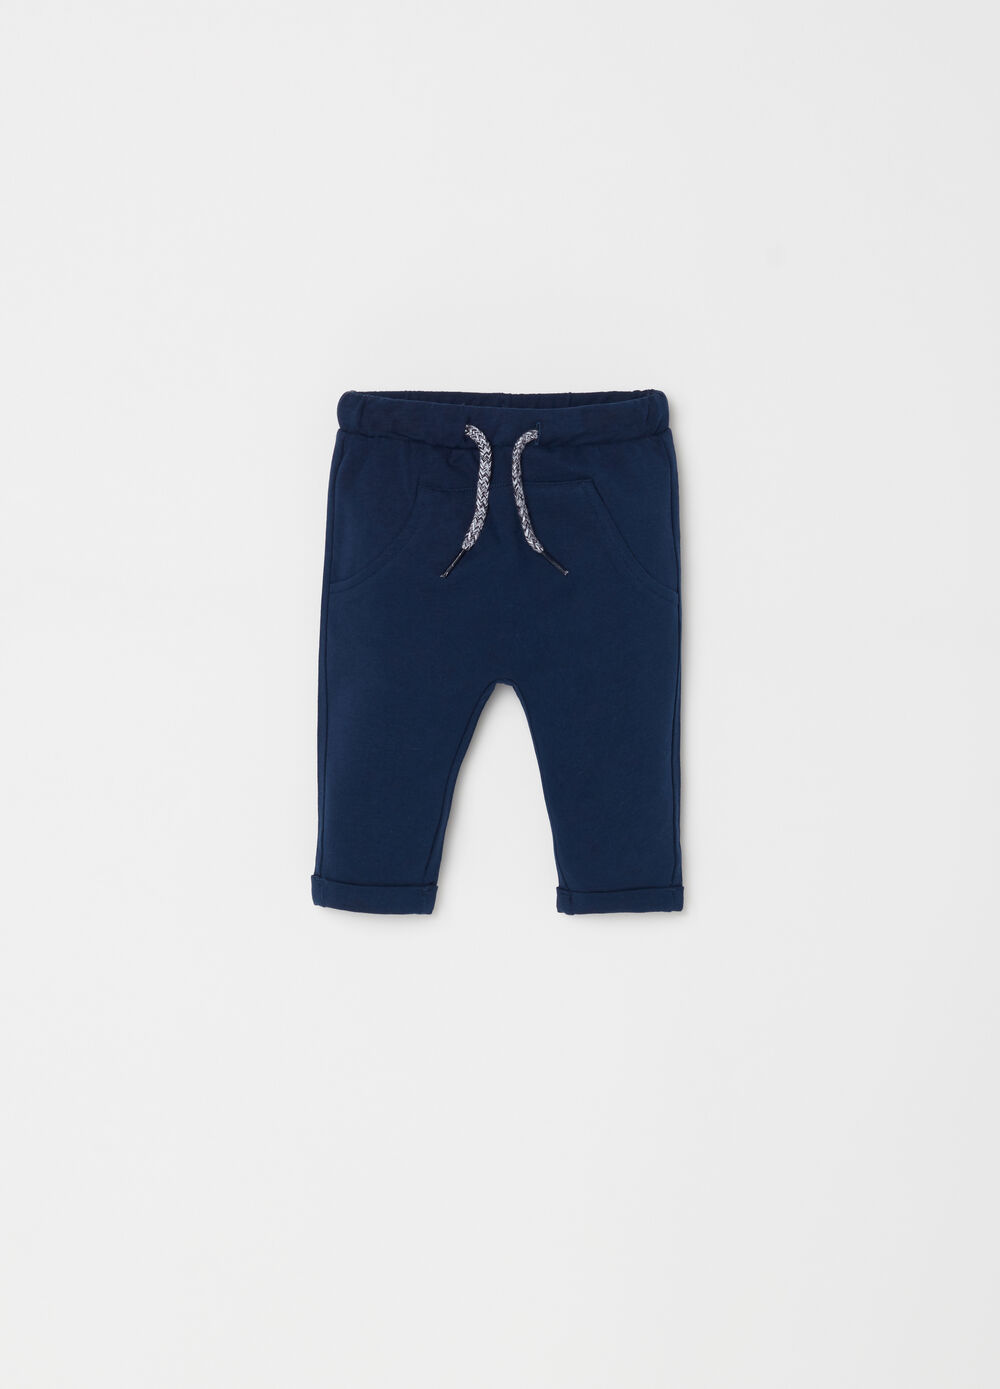 100% organic cotton trousers with pouch pocket